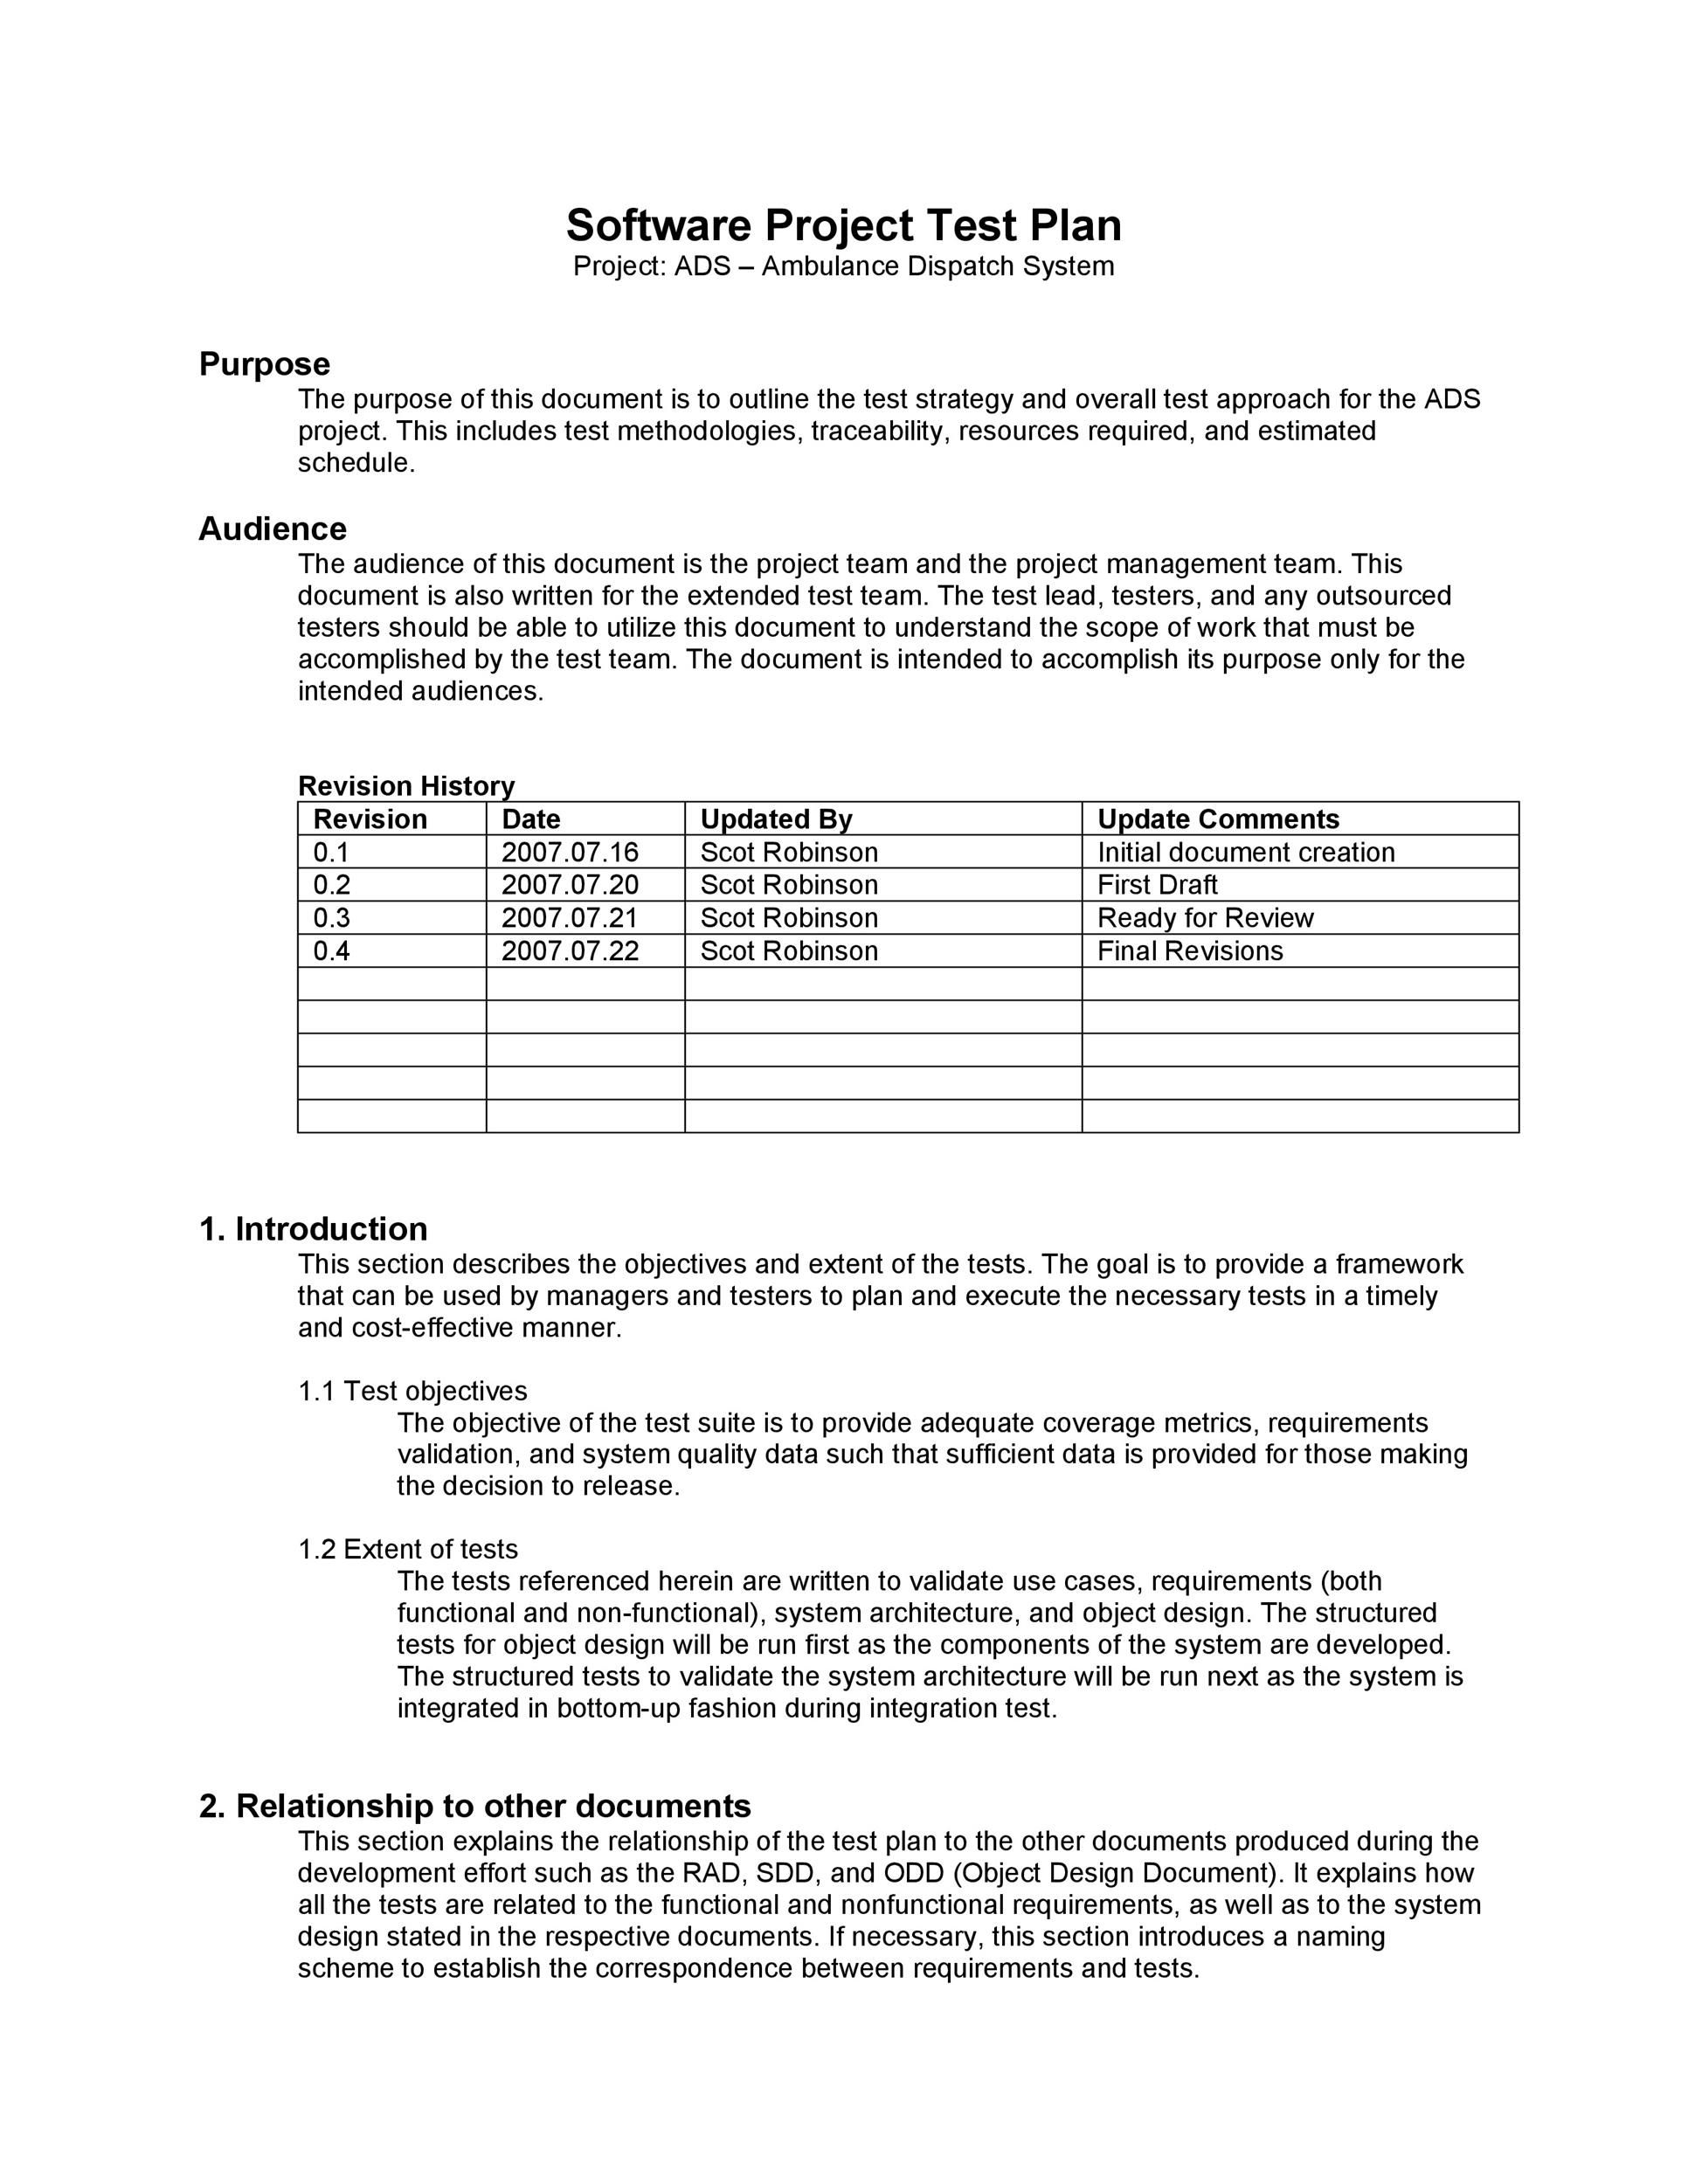 007 Unforgettable Software Testing Plan Template Image  Test Agile Unit Example PdfFull